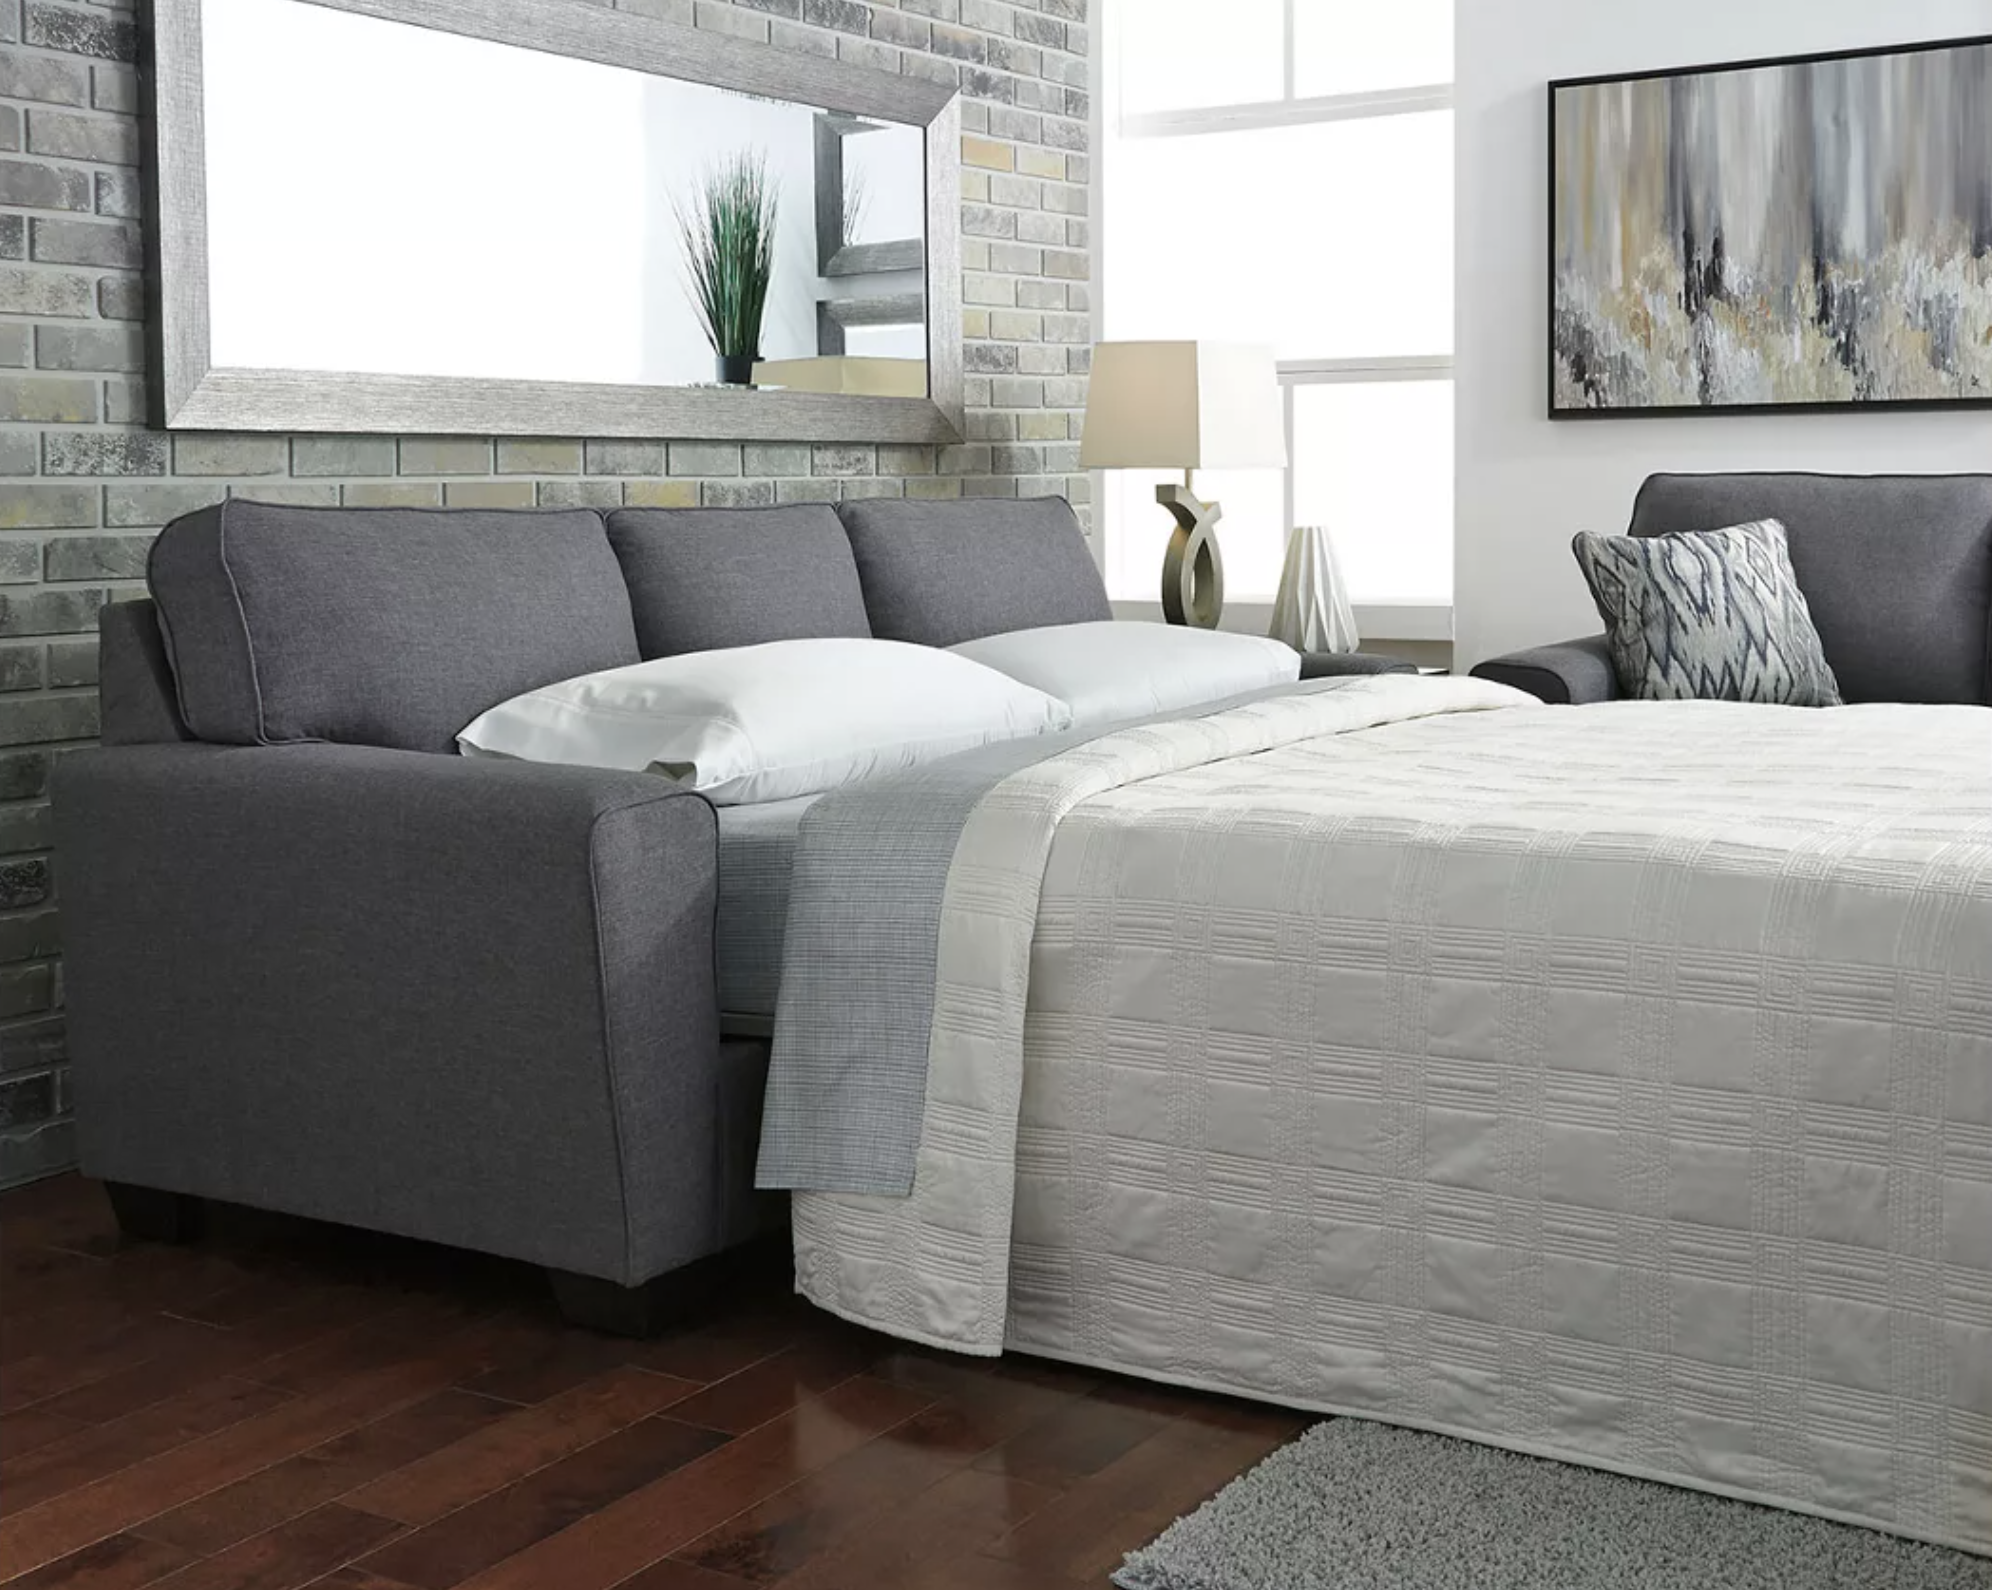 9 Best Sleeper Sofas of 9 - Most Comfortable Pull-Out Sofa Beds